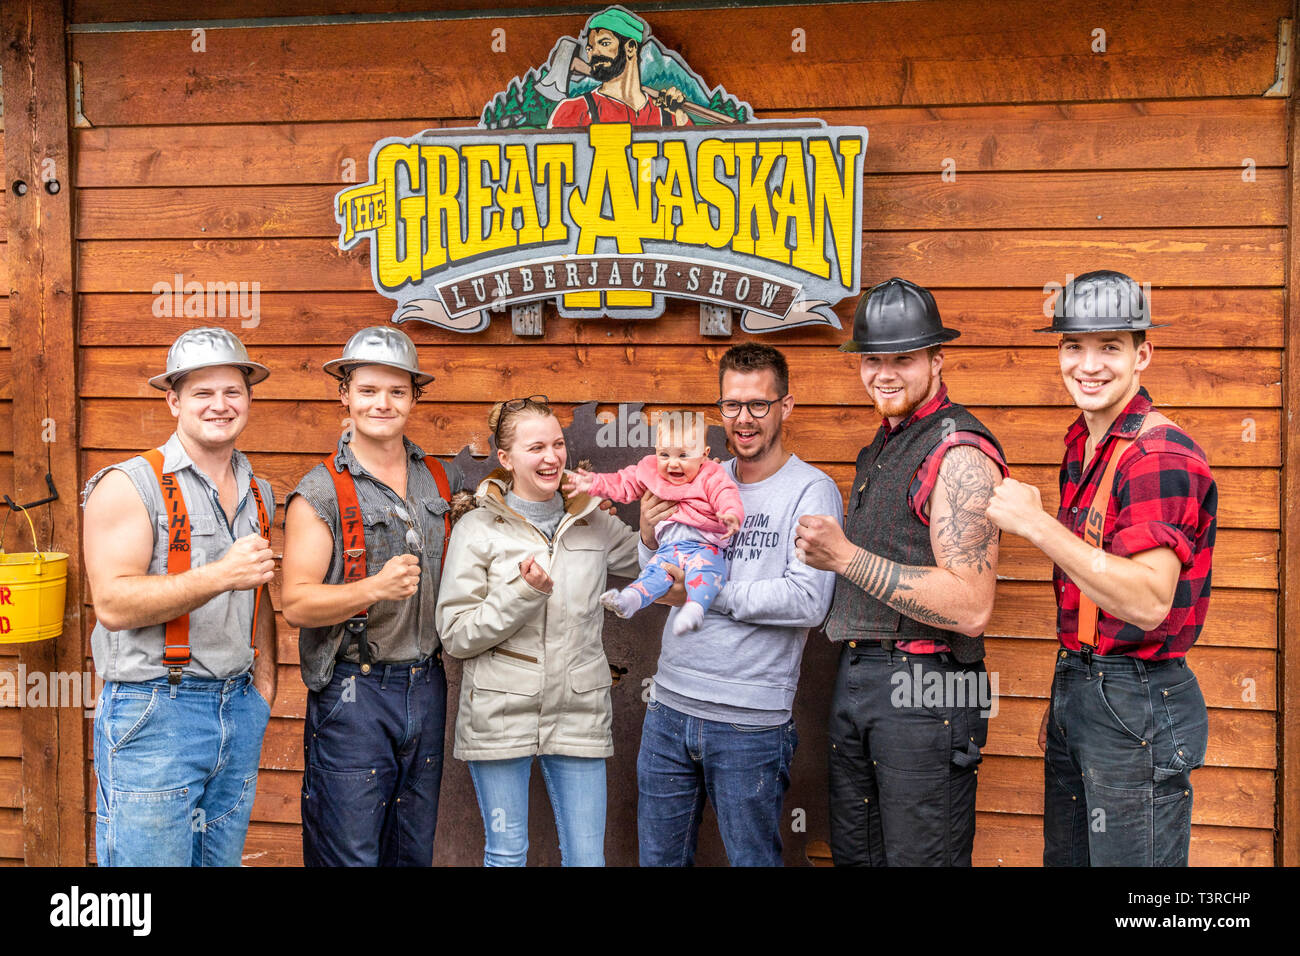 b2c7a251e92b A young family with the lumberjacks after the show at the Great Alaskan Lumberjack  Show in